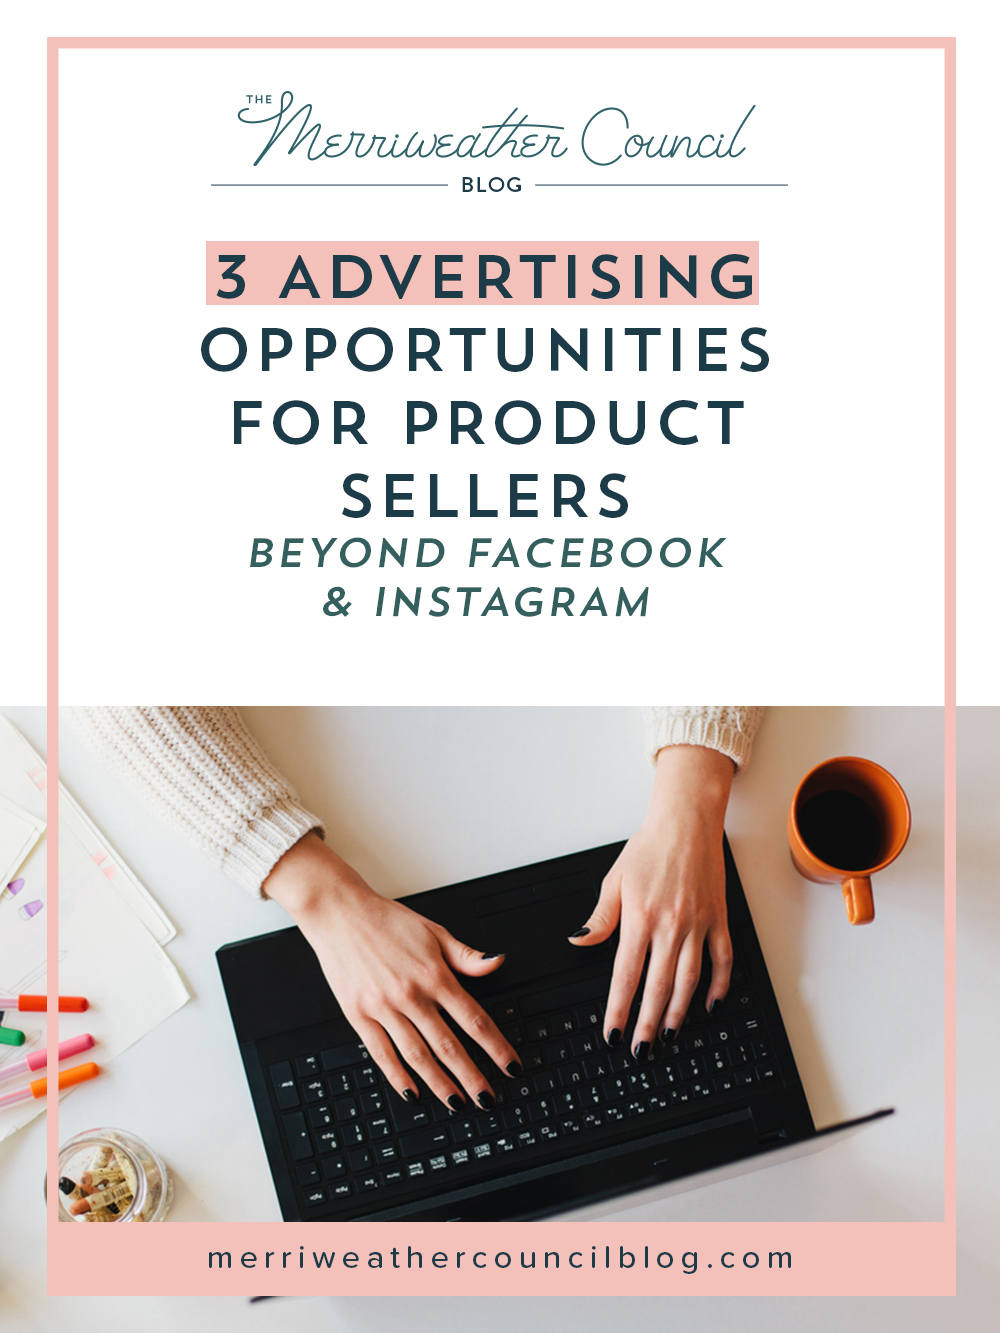 3 advertising opportunities for product sellers that are NOT Facebook or Instagram focused | the merriweather council blog